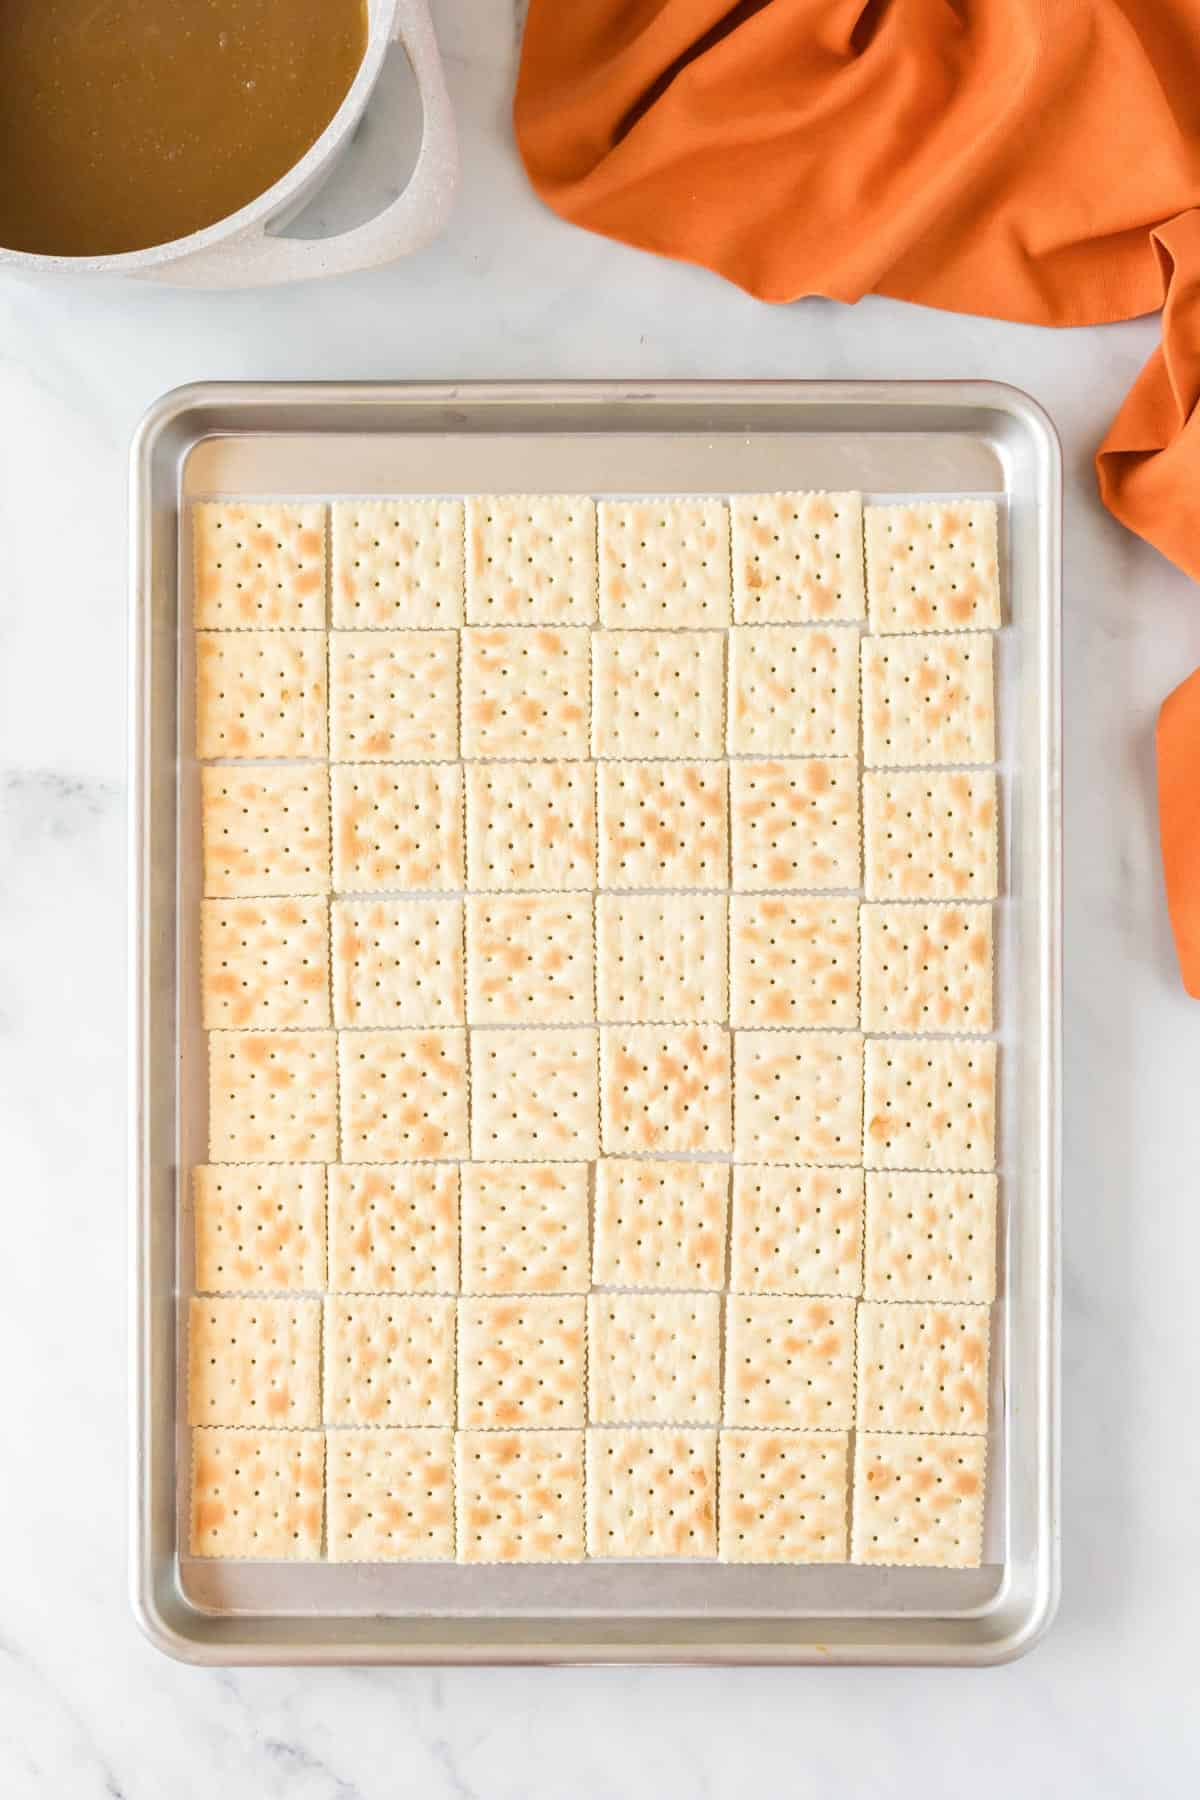 baking sheet lined with saltine crackers